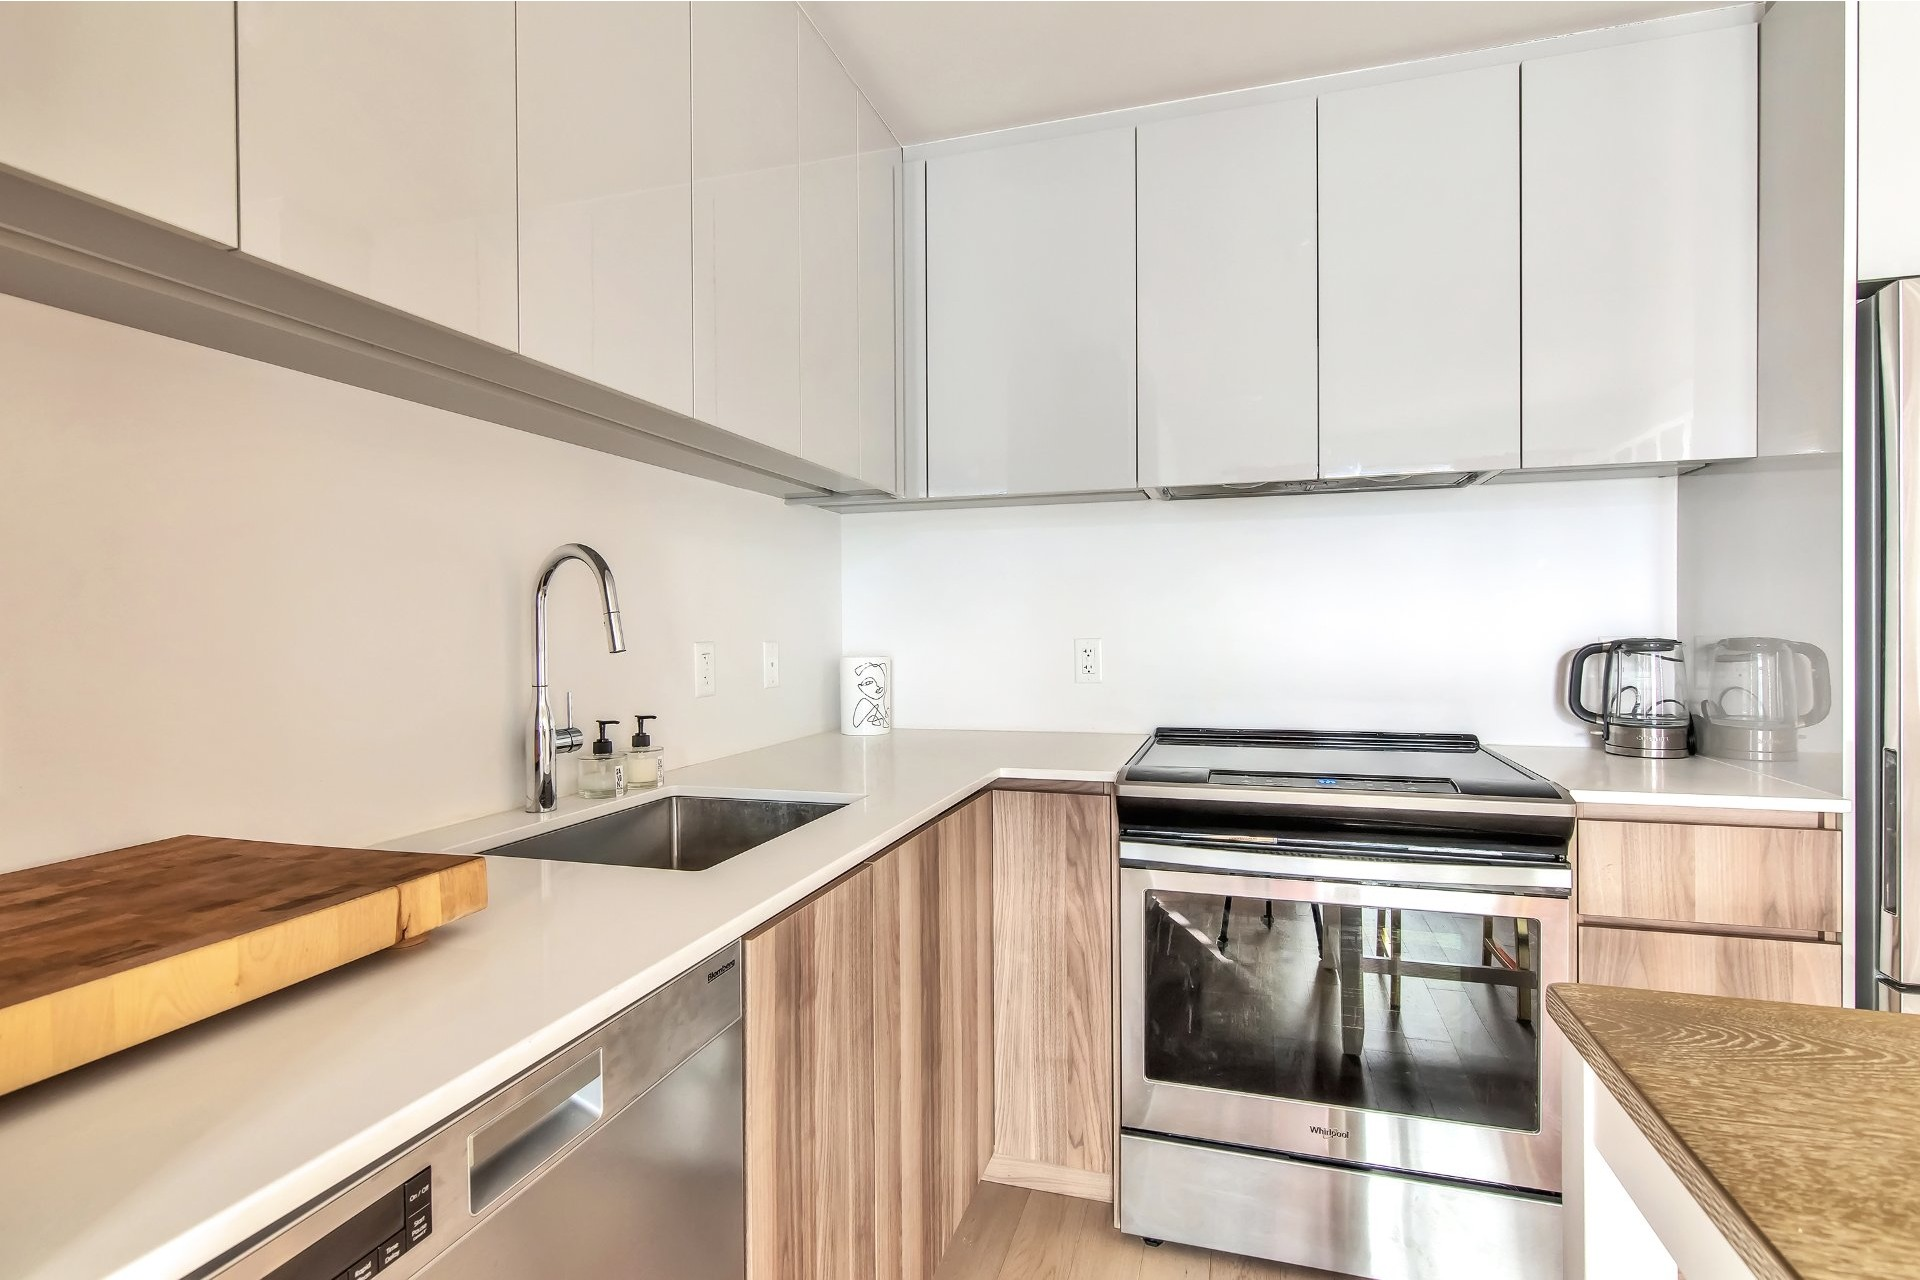 image 9 - Apartment For sale Brossard - 4 rooms